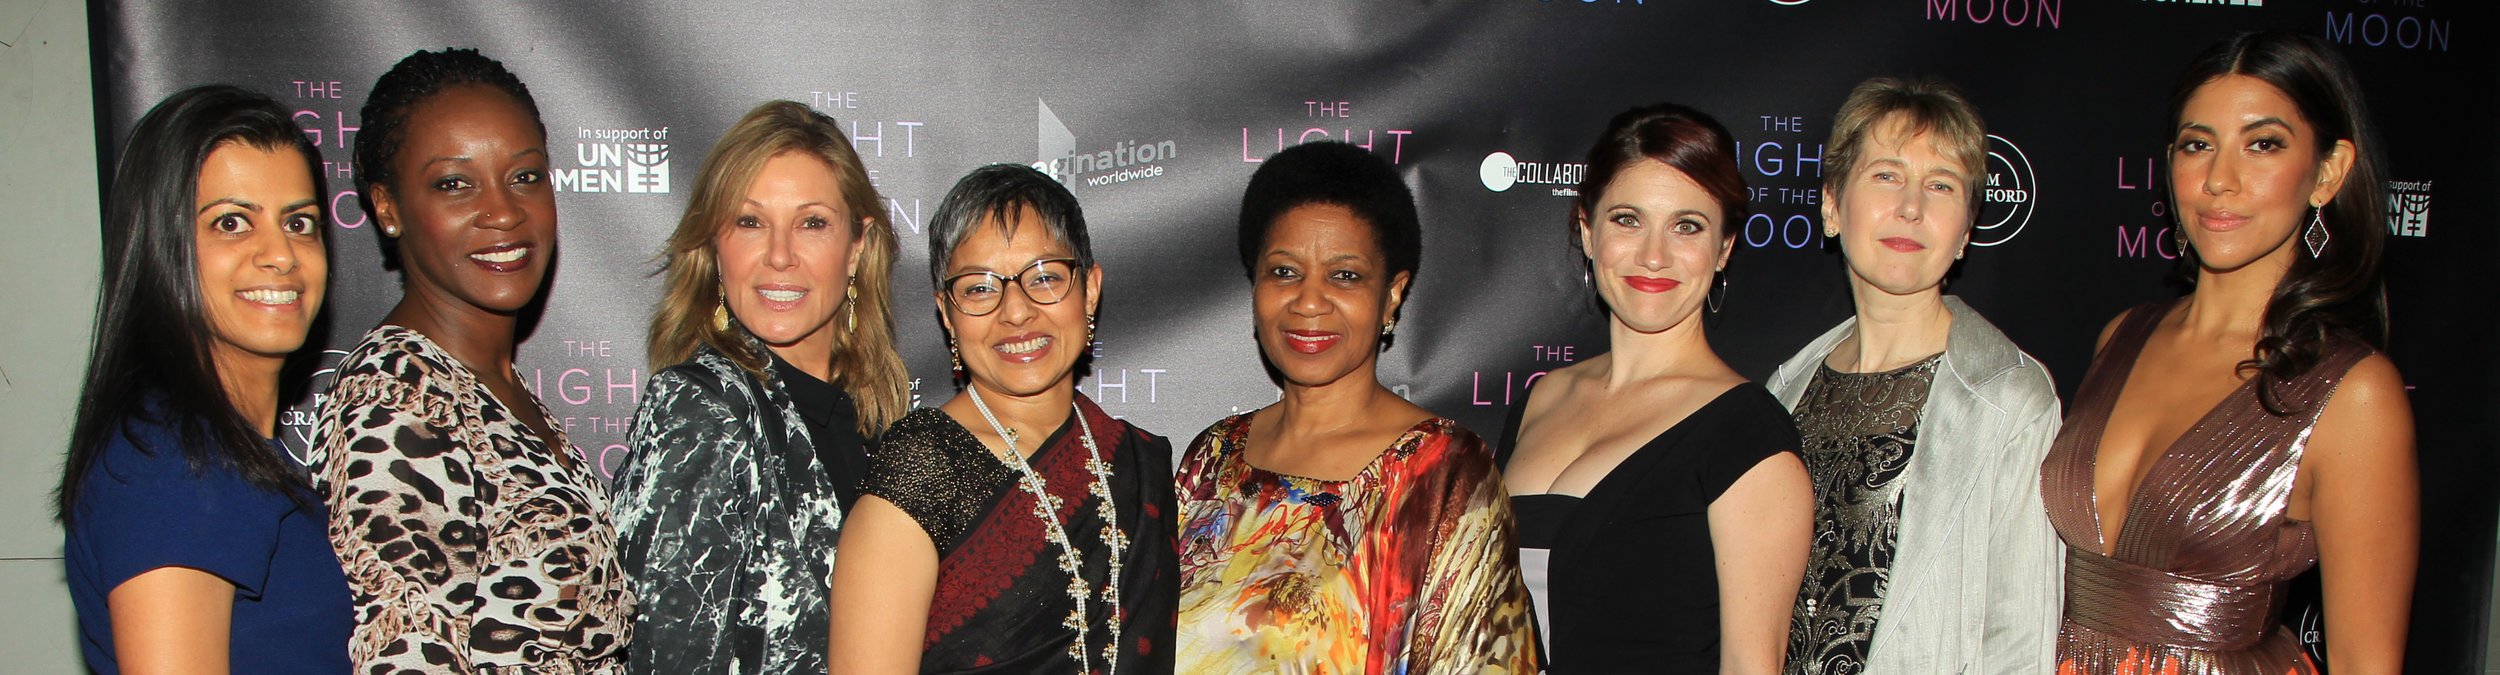 Writer-director, Jessica M. Thompson,lead actress, Stephanie Beatriz, and producer, Maria Cuomo Cole, with Executive Director,  Phumzile Mlambo-Ngcuka  , and other staff members of UN Women at the premiere of  'The Light of the Moon'  in New York City.